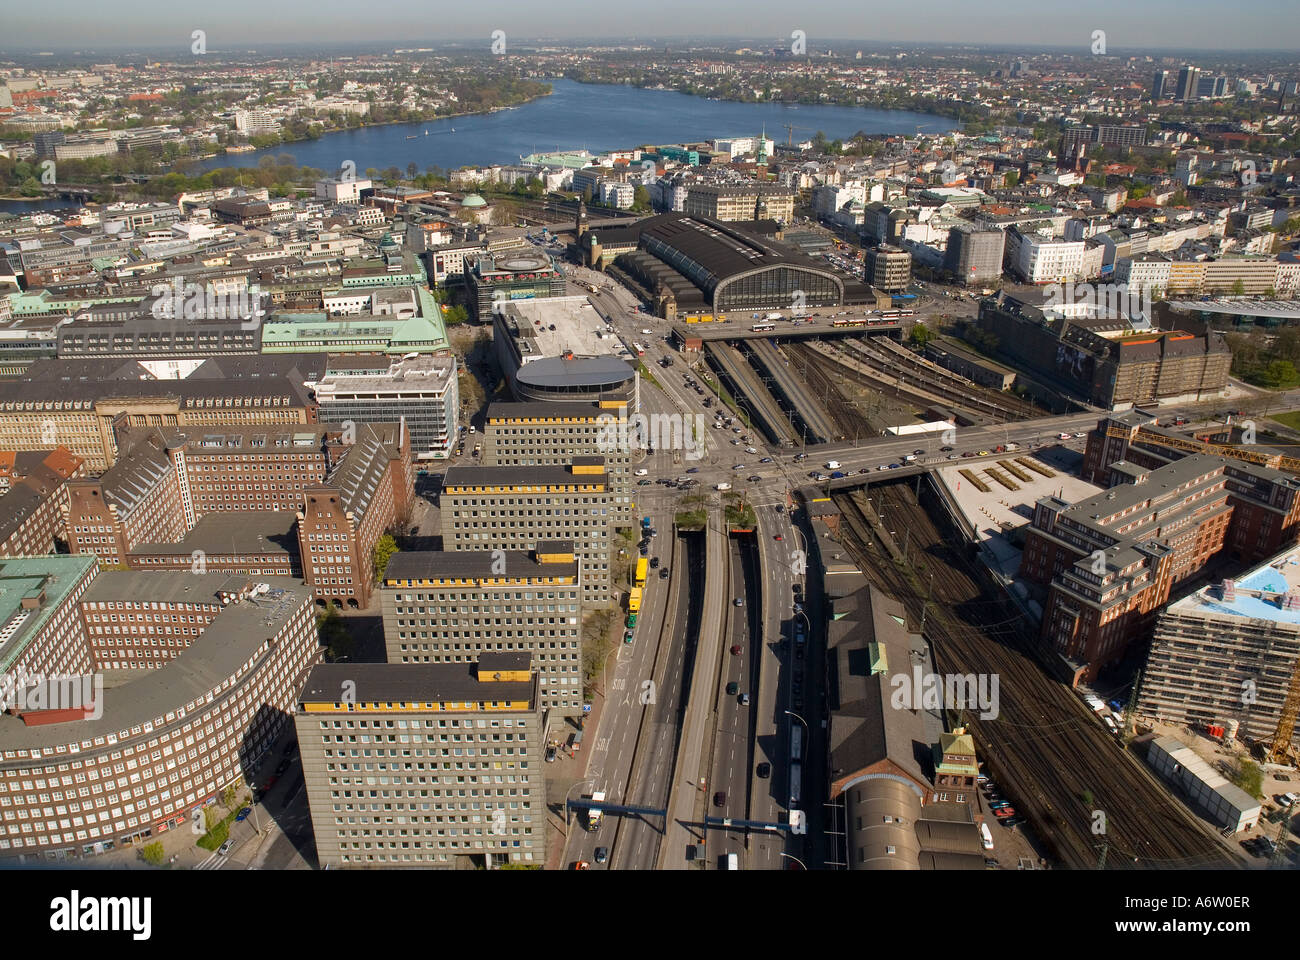 aerial view main station tracks stock photos aerial view main station tracks stock images alamy. Black Bedroom Furniture Sets. Home Design Ideas